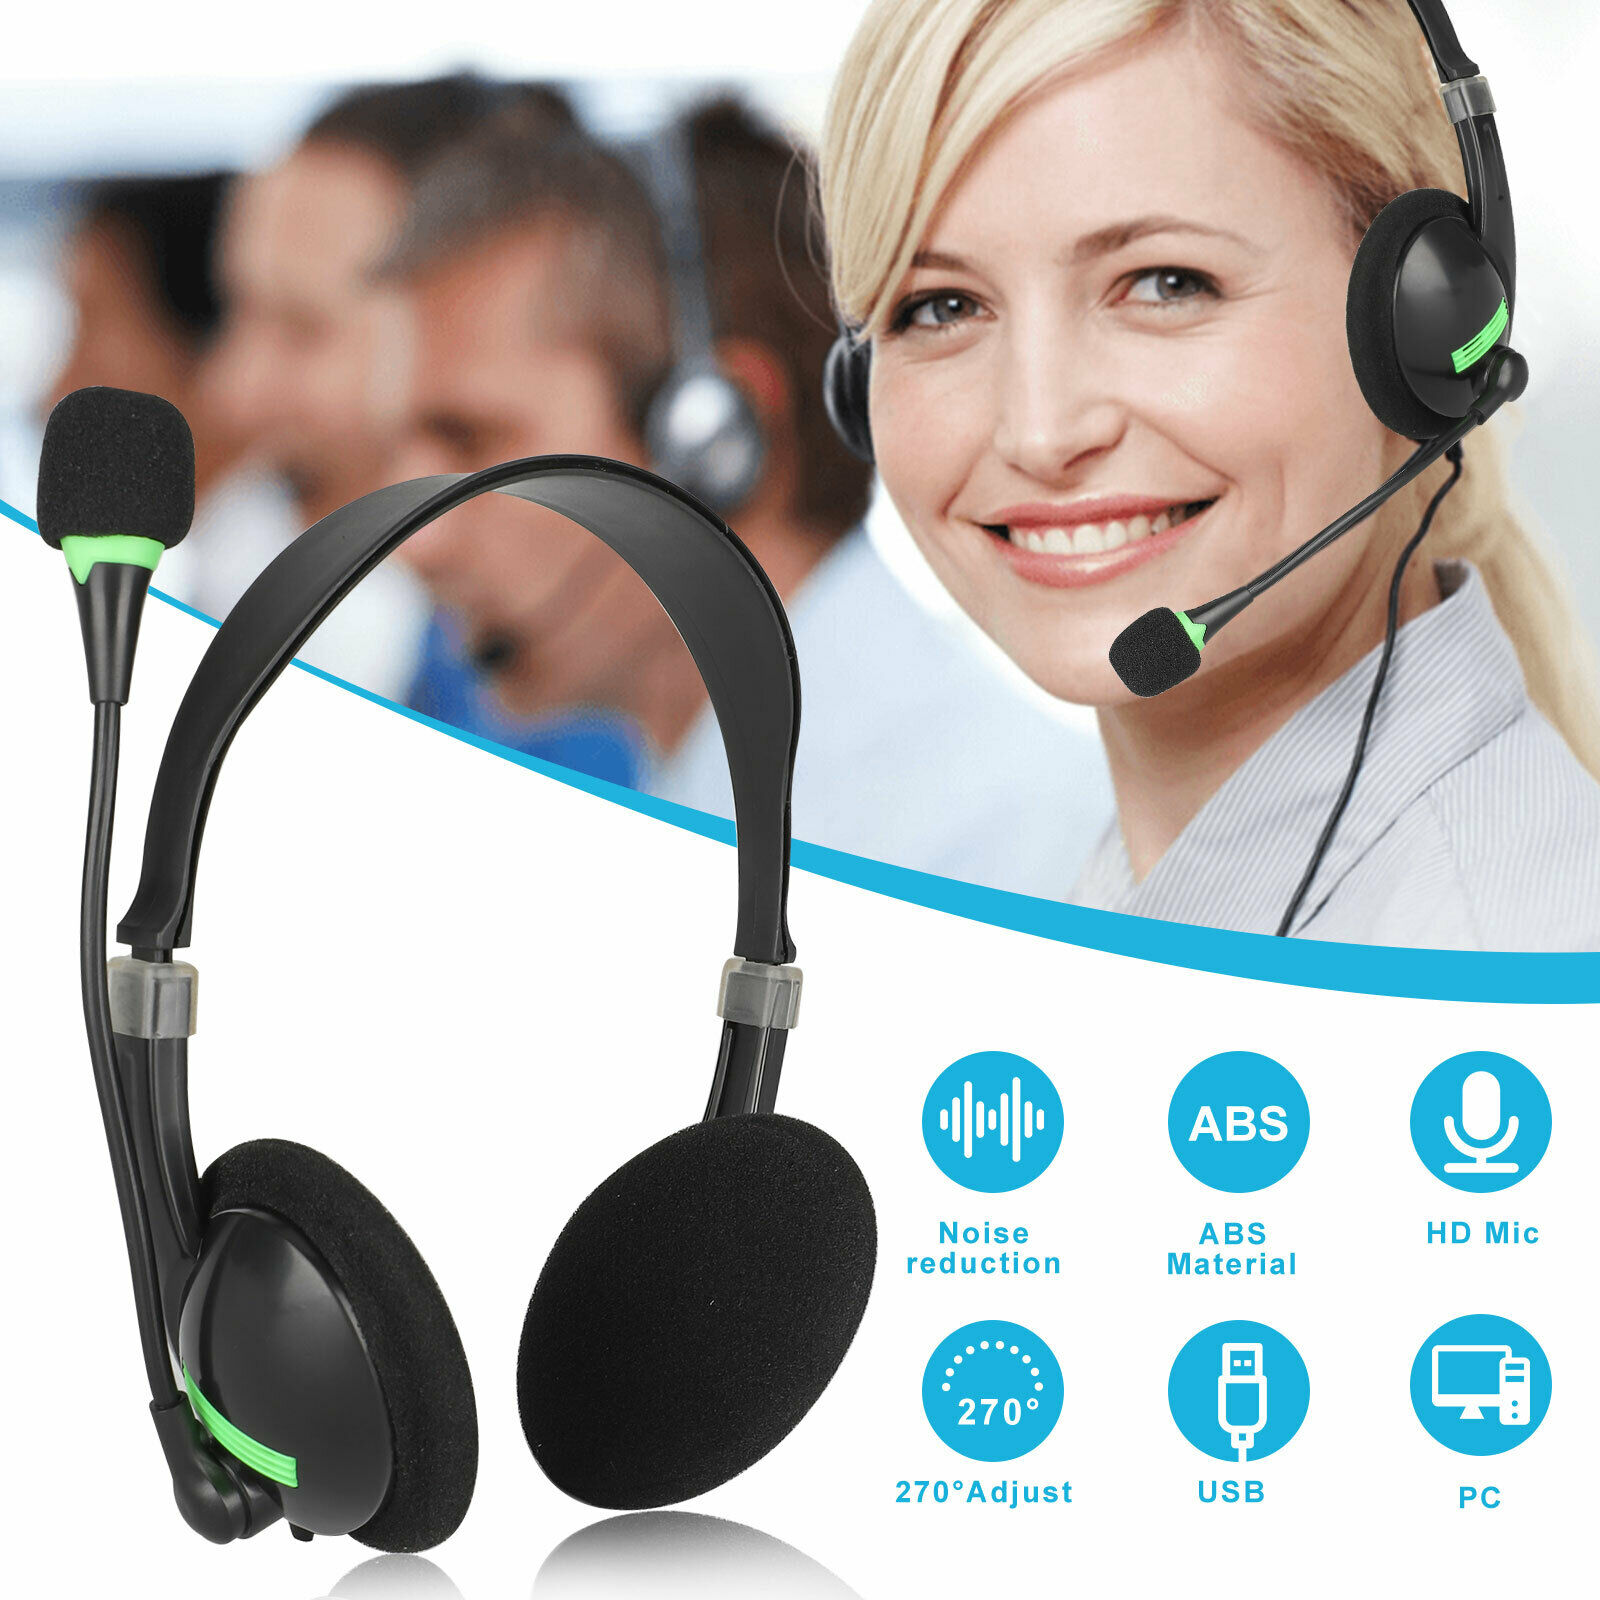 Mpow 071 Usb Headset 3 5mm Computer Headset Microphone Noise Cancelling For Sale Online Ebay